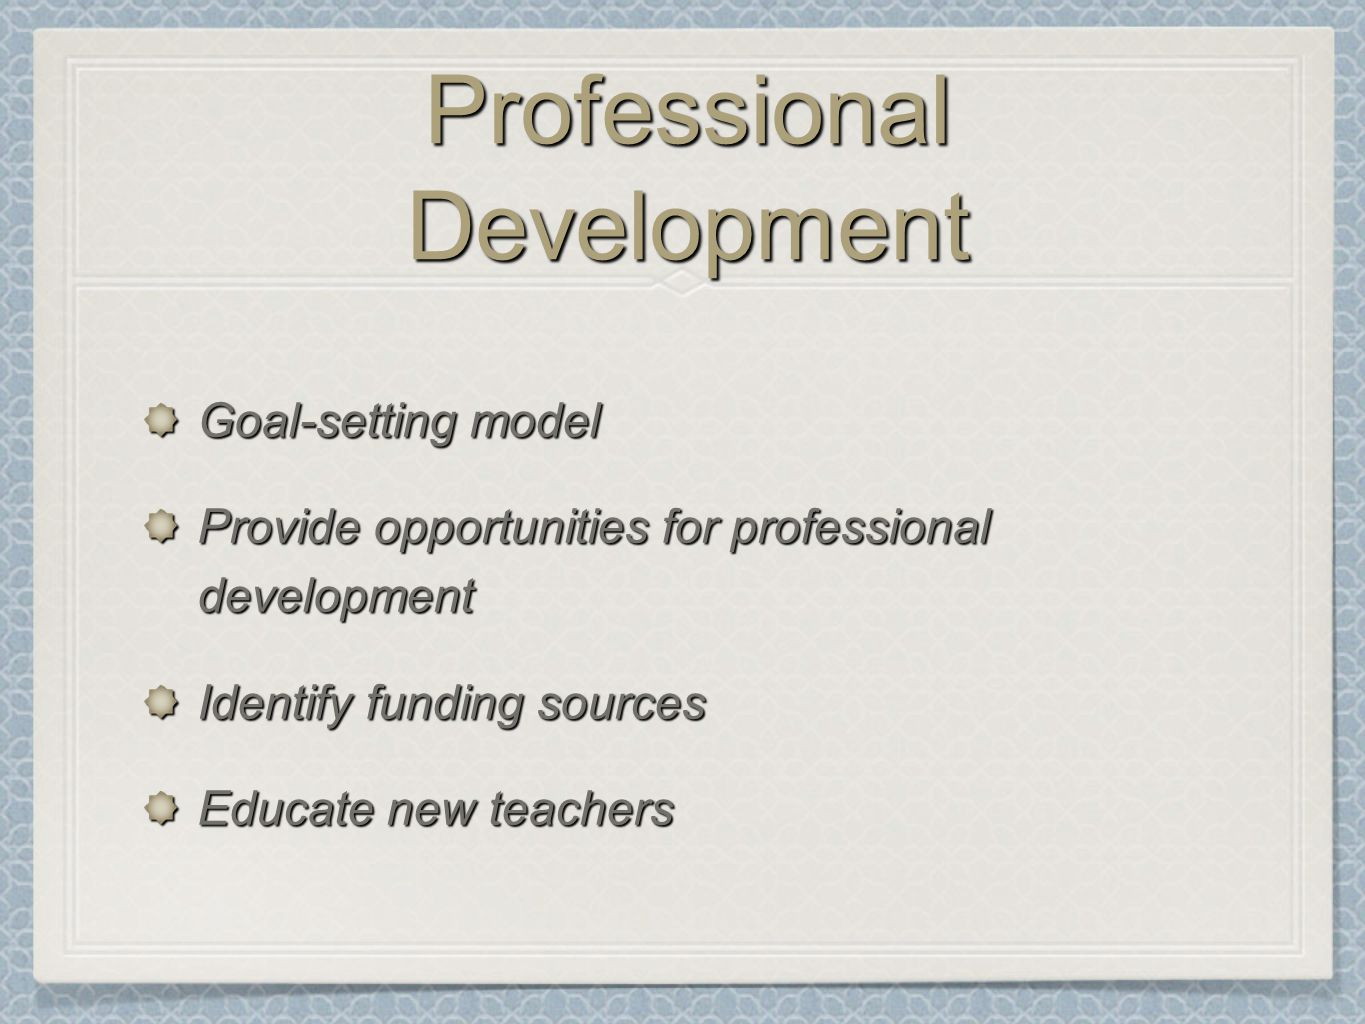 Professional Development Goal-setting model Provide opportunities for professional development Identify funding sources Educate new teachers